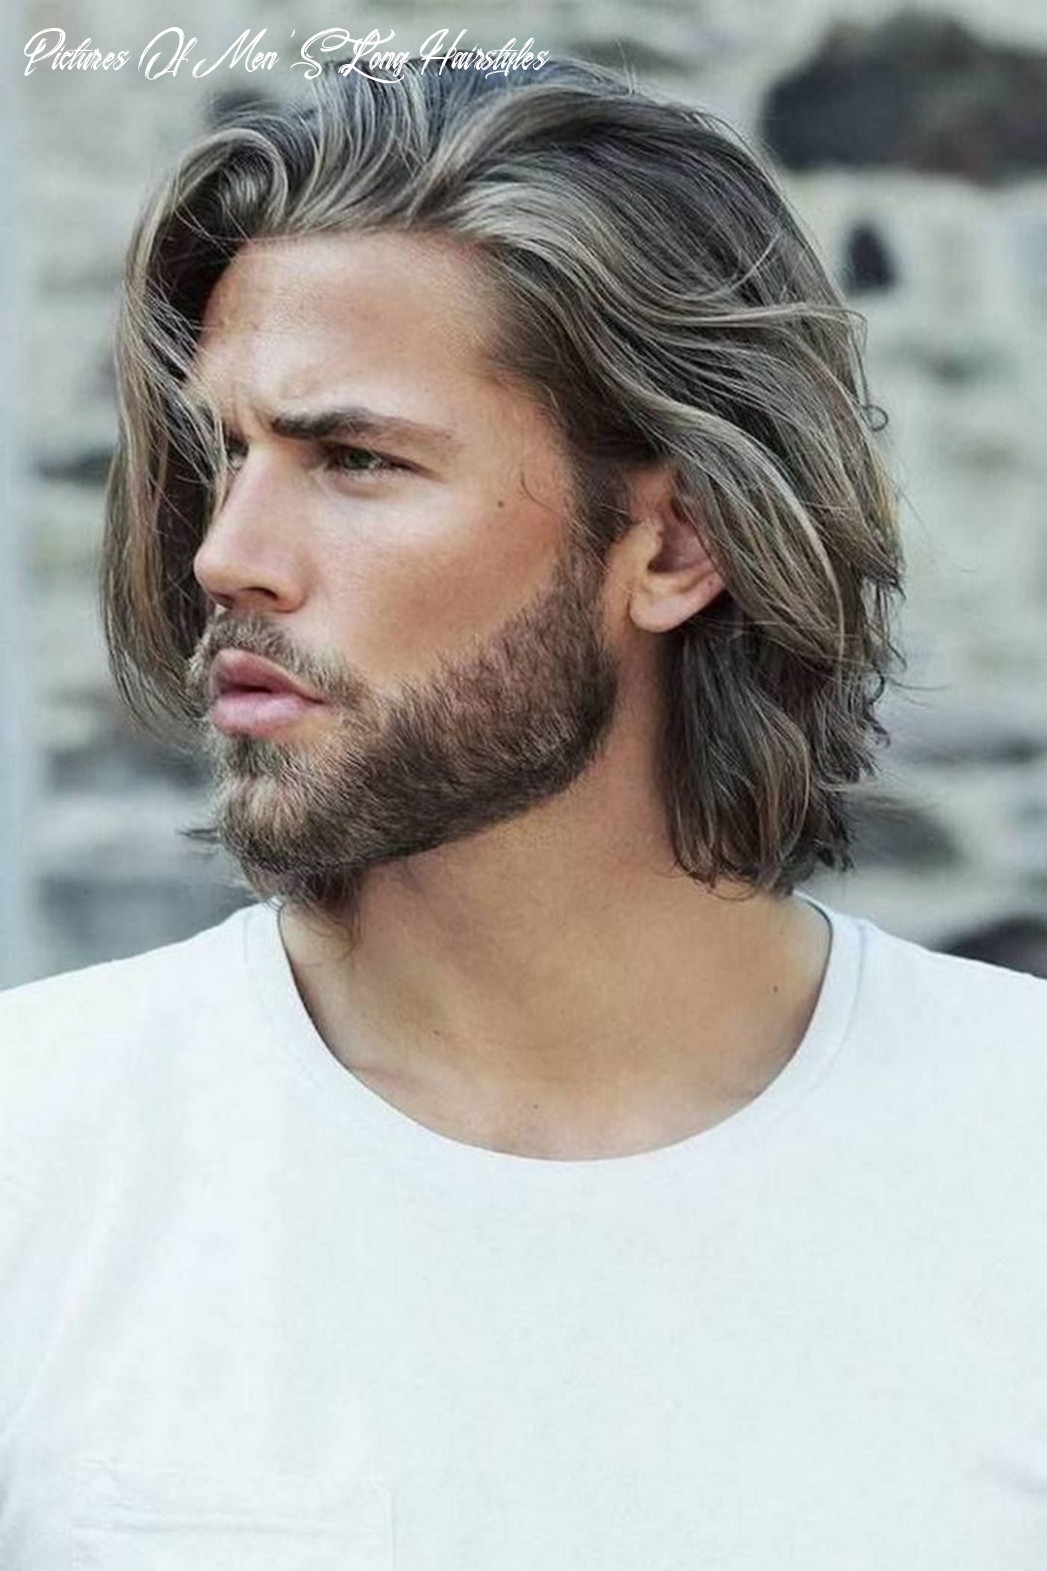 10 Coolest Men's Long Hairstyles Models Throughout 10 | Mens ...